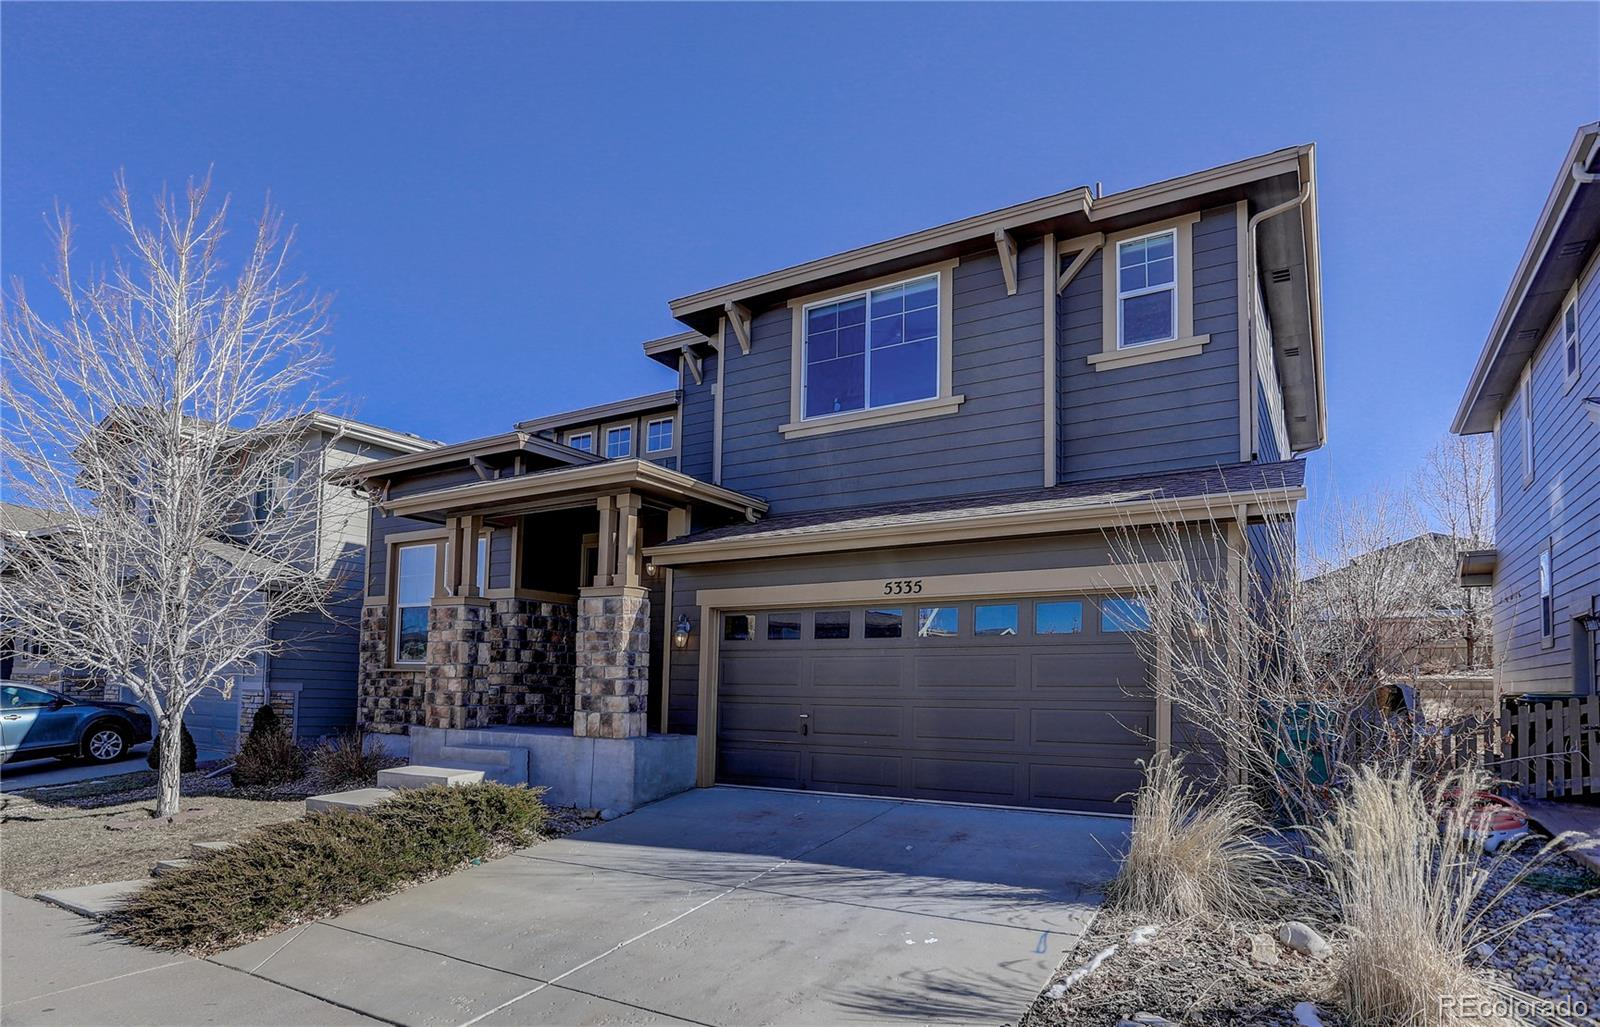 5335 Clovervale Circle, Highlands Ranch, CO 80130 - Highlands Ranch, CO real estate listing